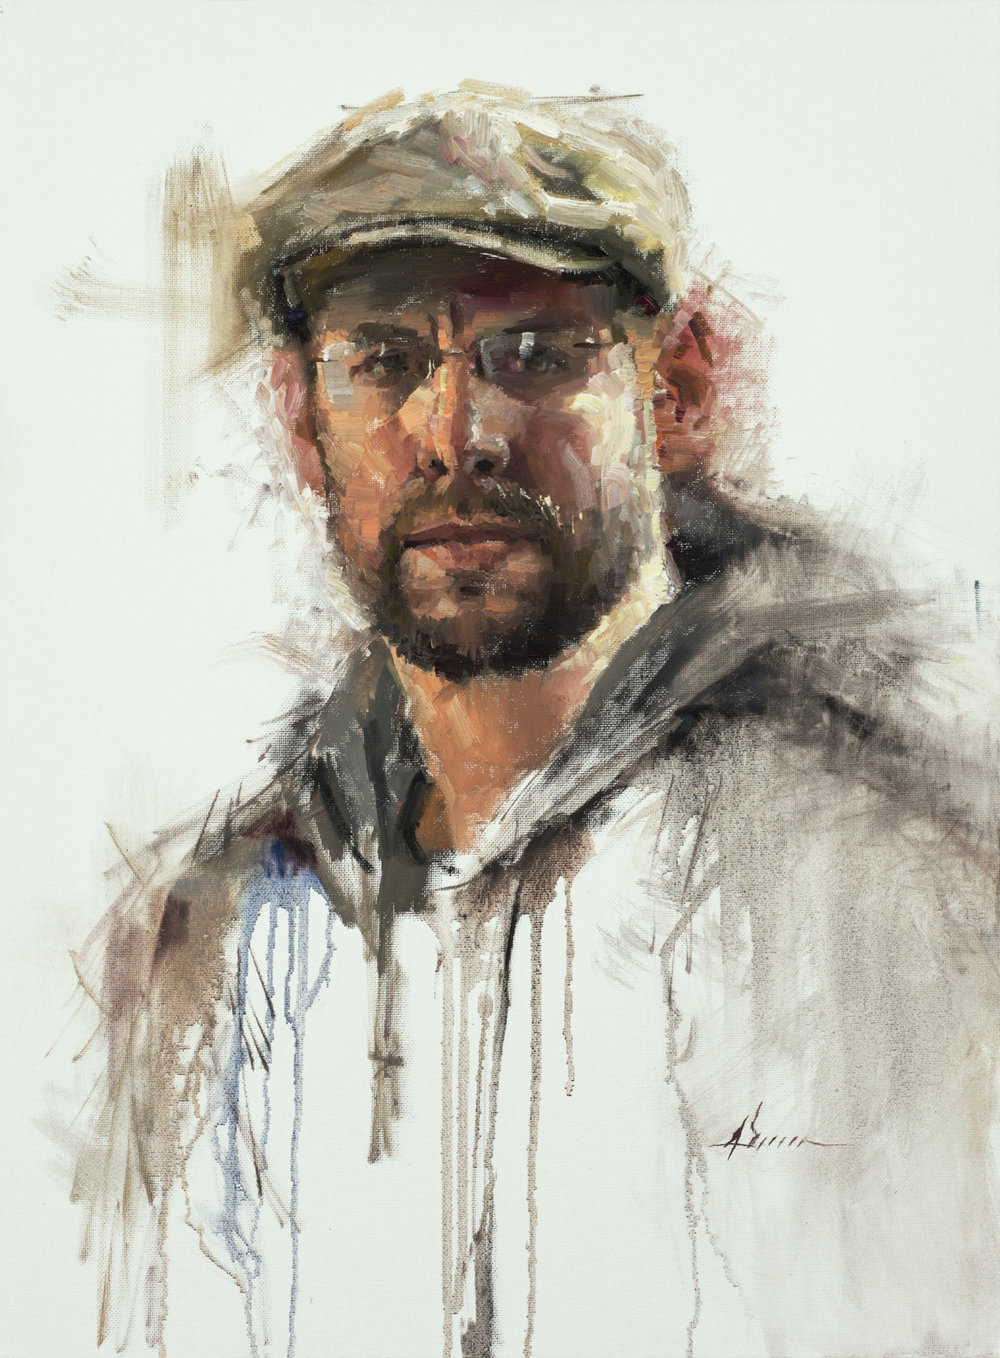 Jason Sacran, Self Portrait